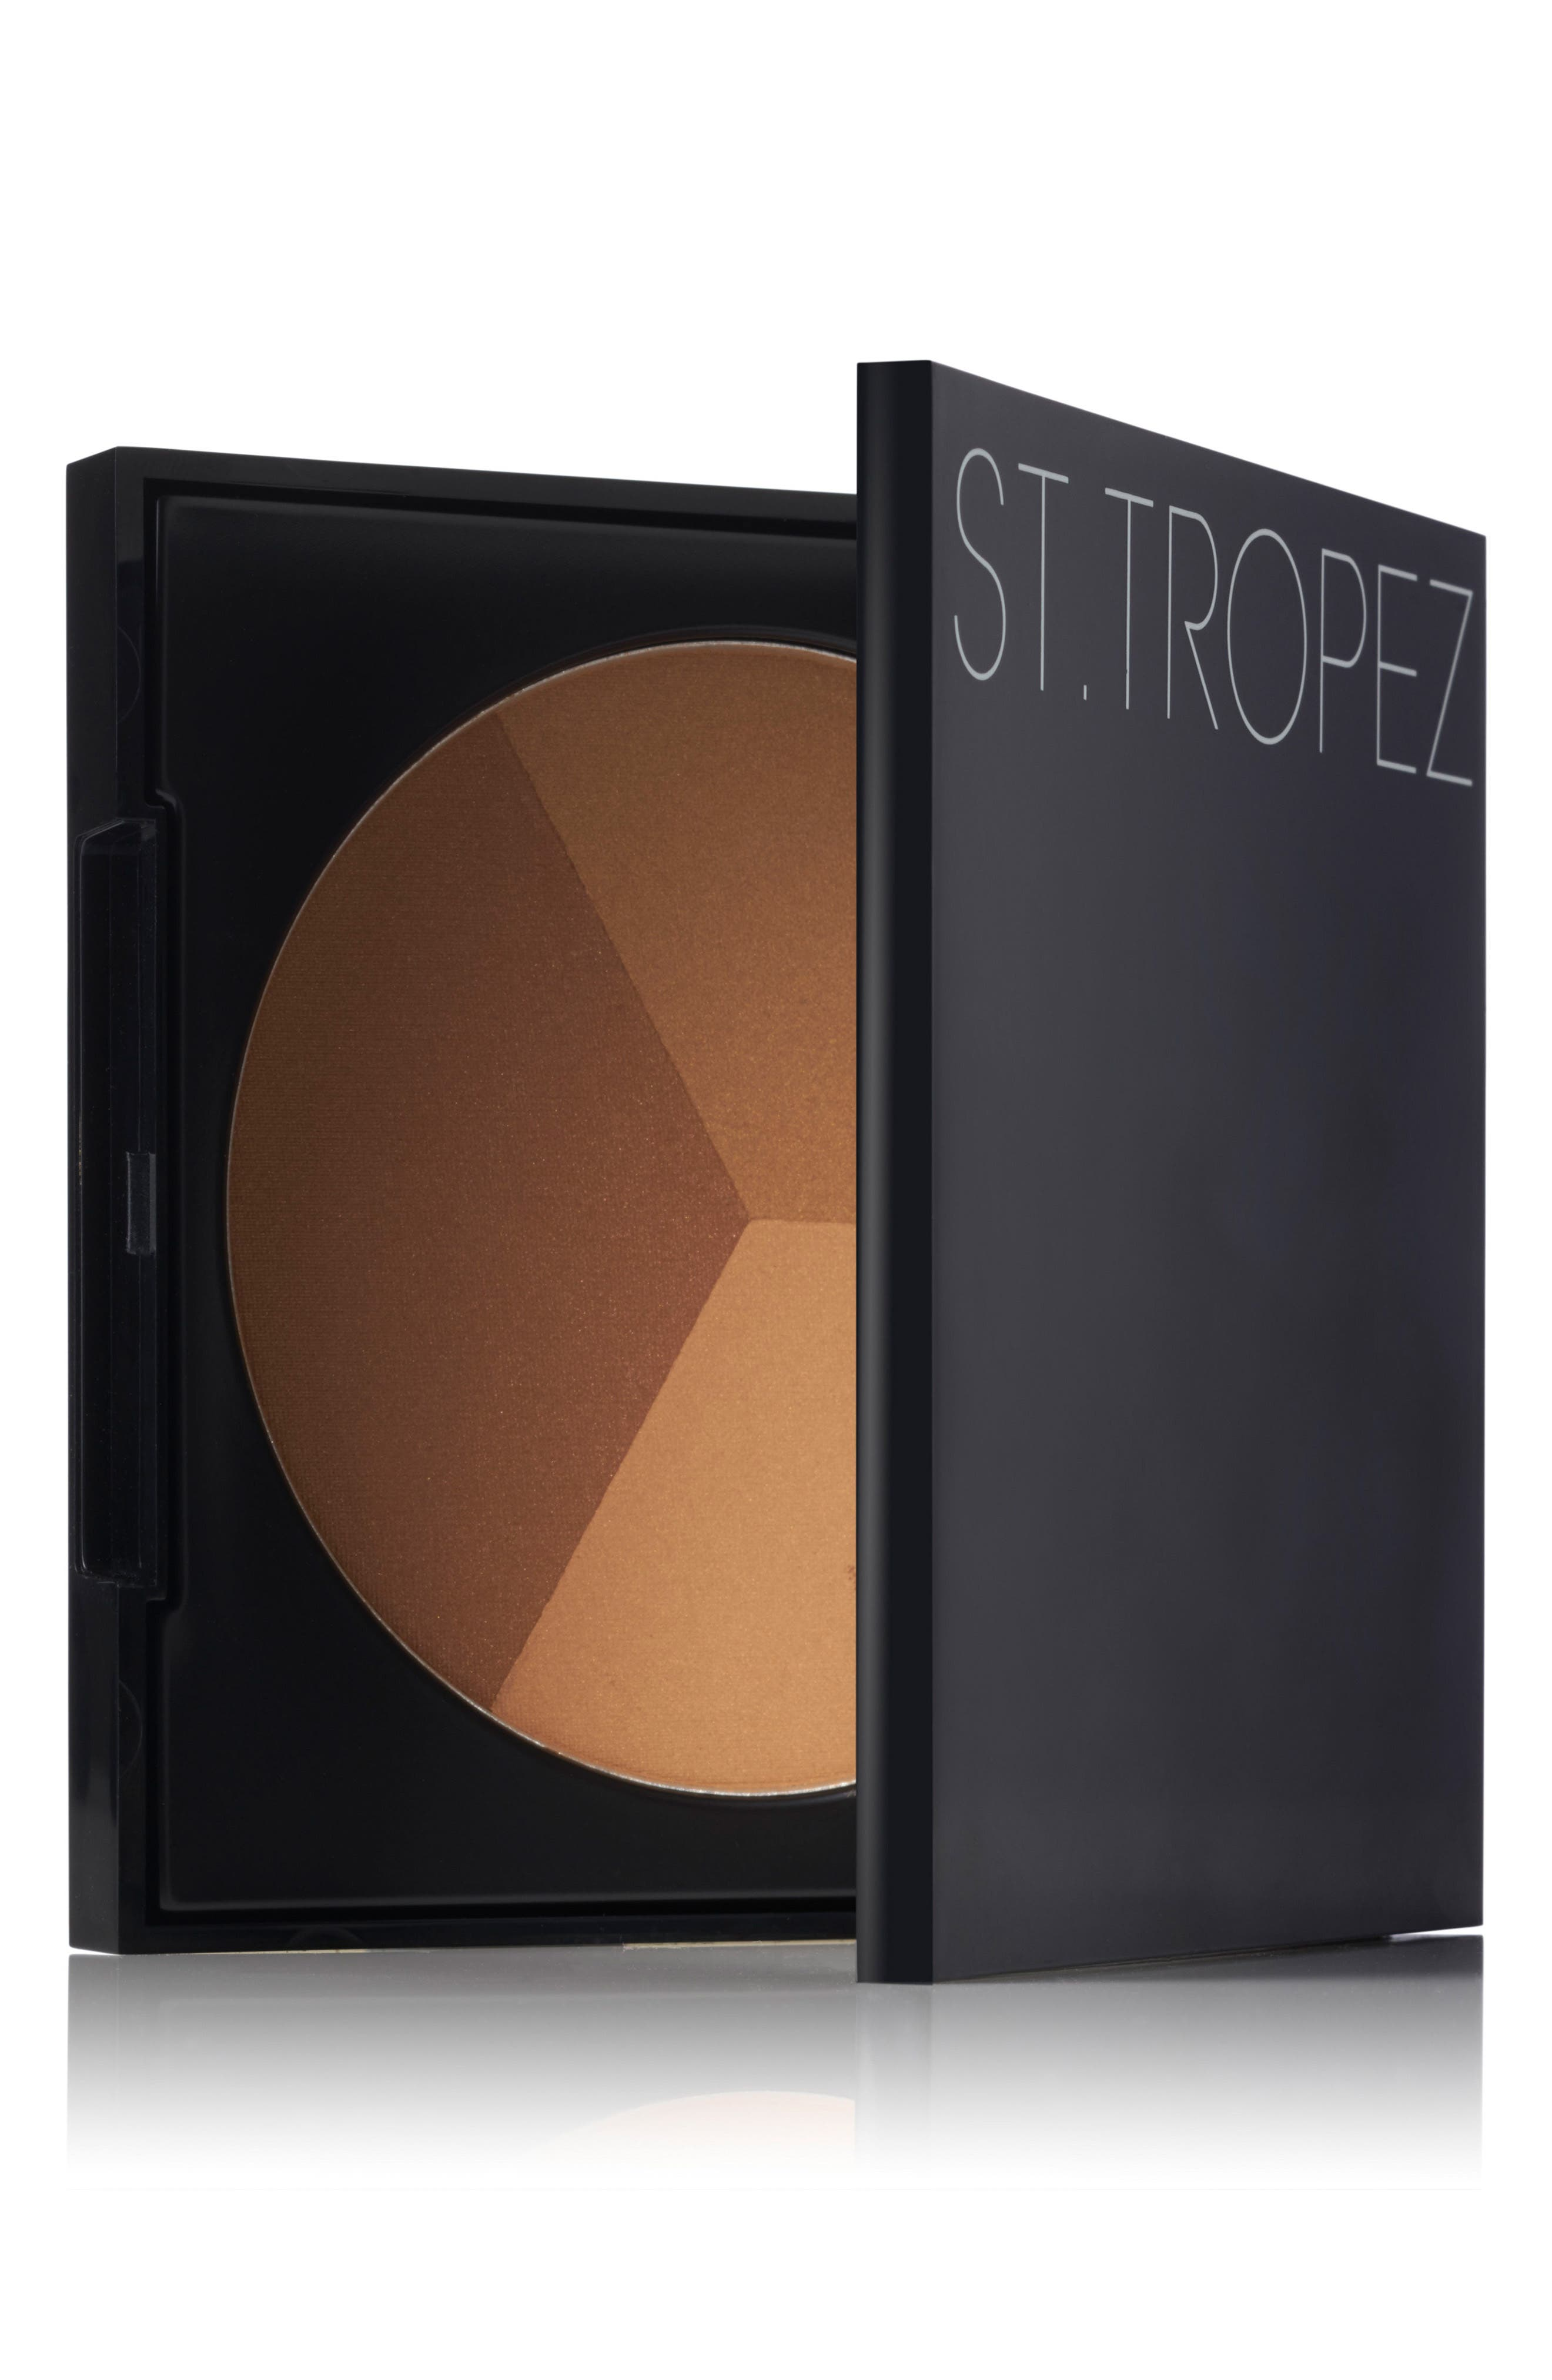 Alternate Image 1 Selected - St. Tropez 3-in-1 Bronzing Powder